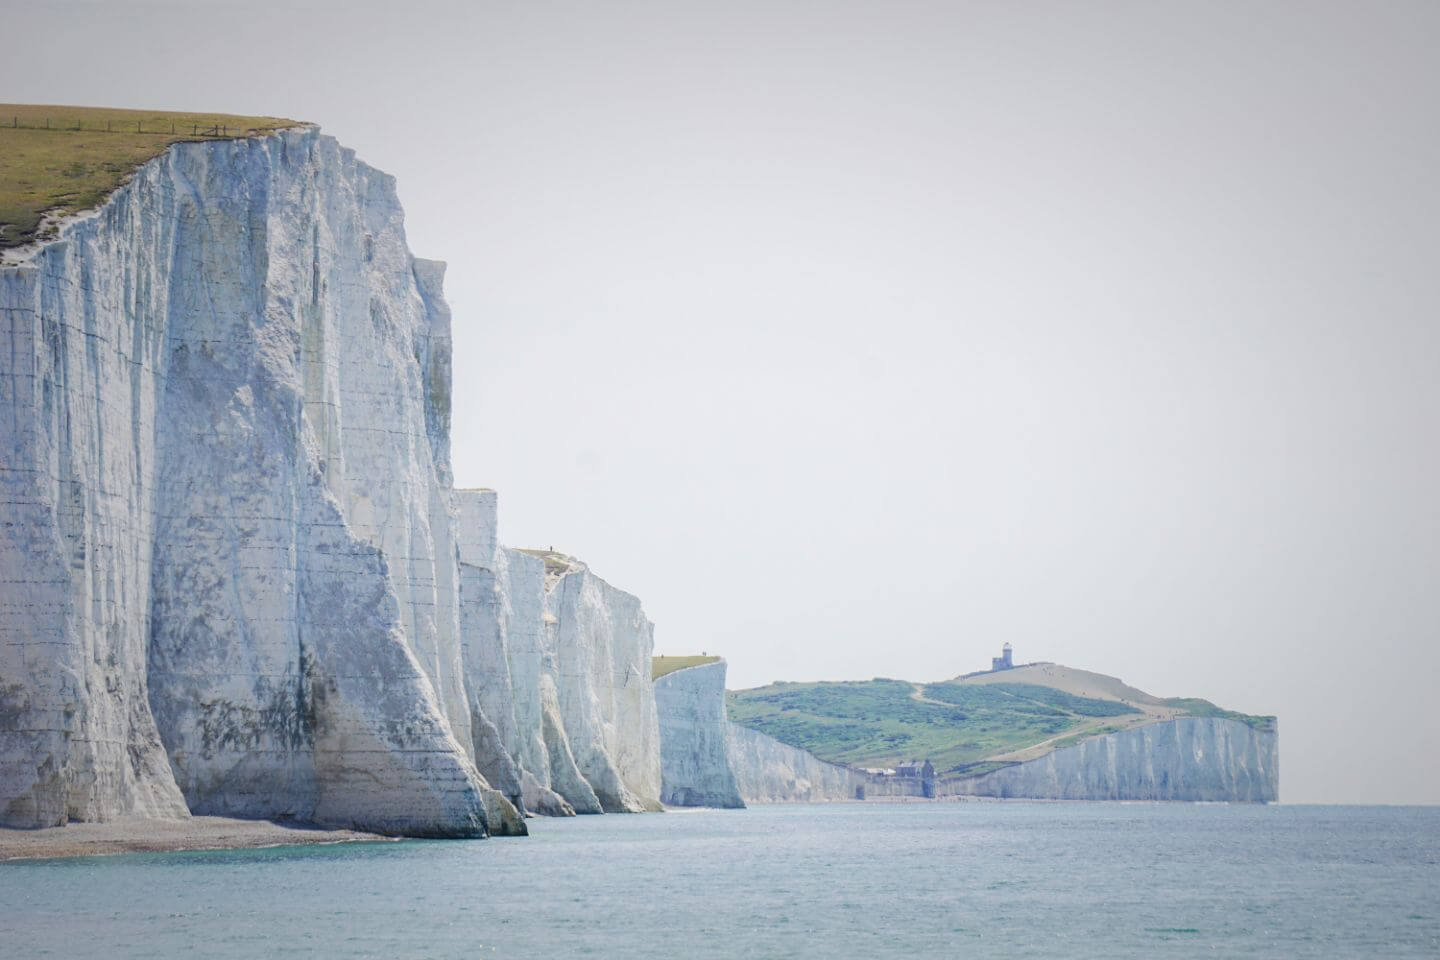 Seven Sisters Cliffs Walk - Seaford to Eastbourne, England